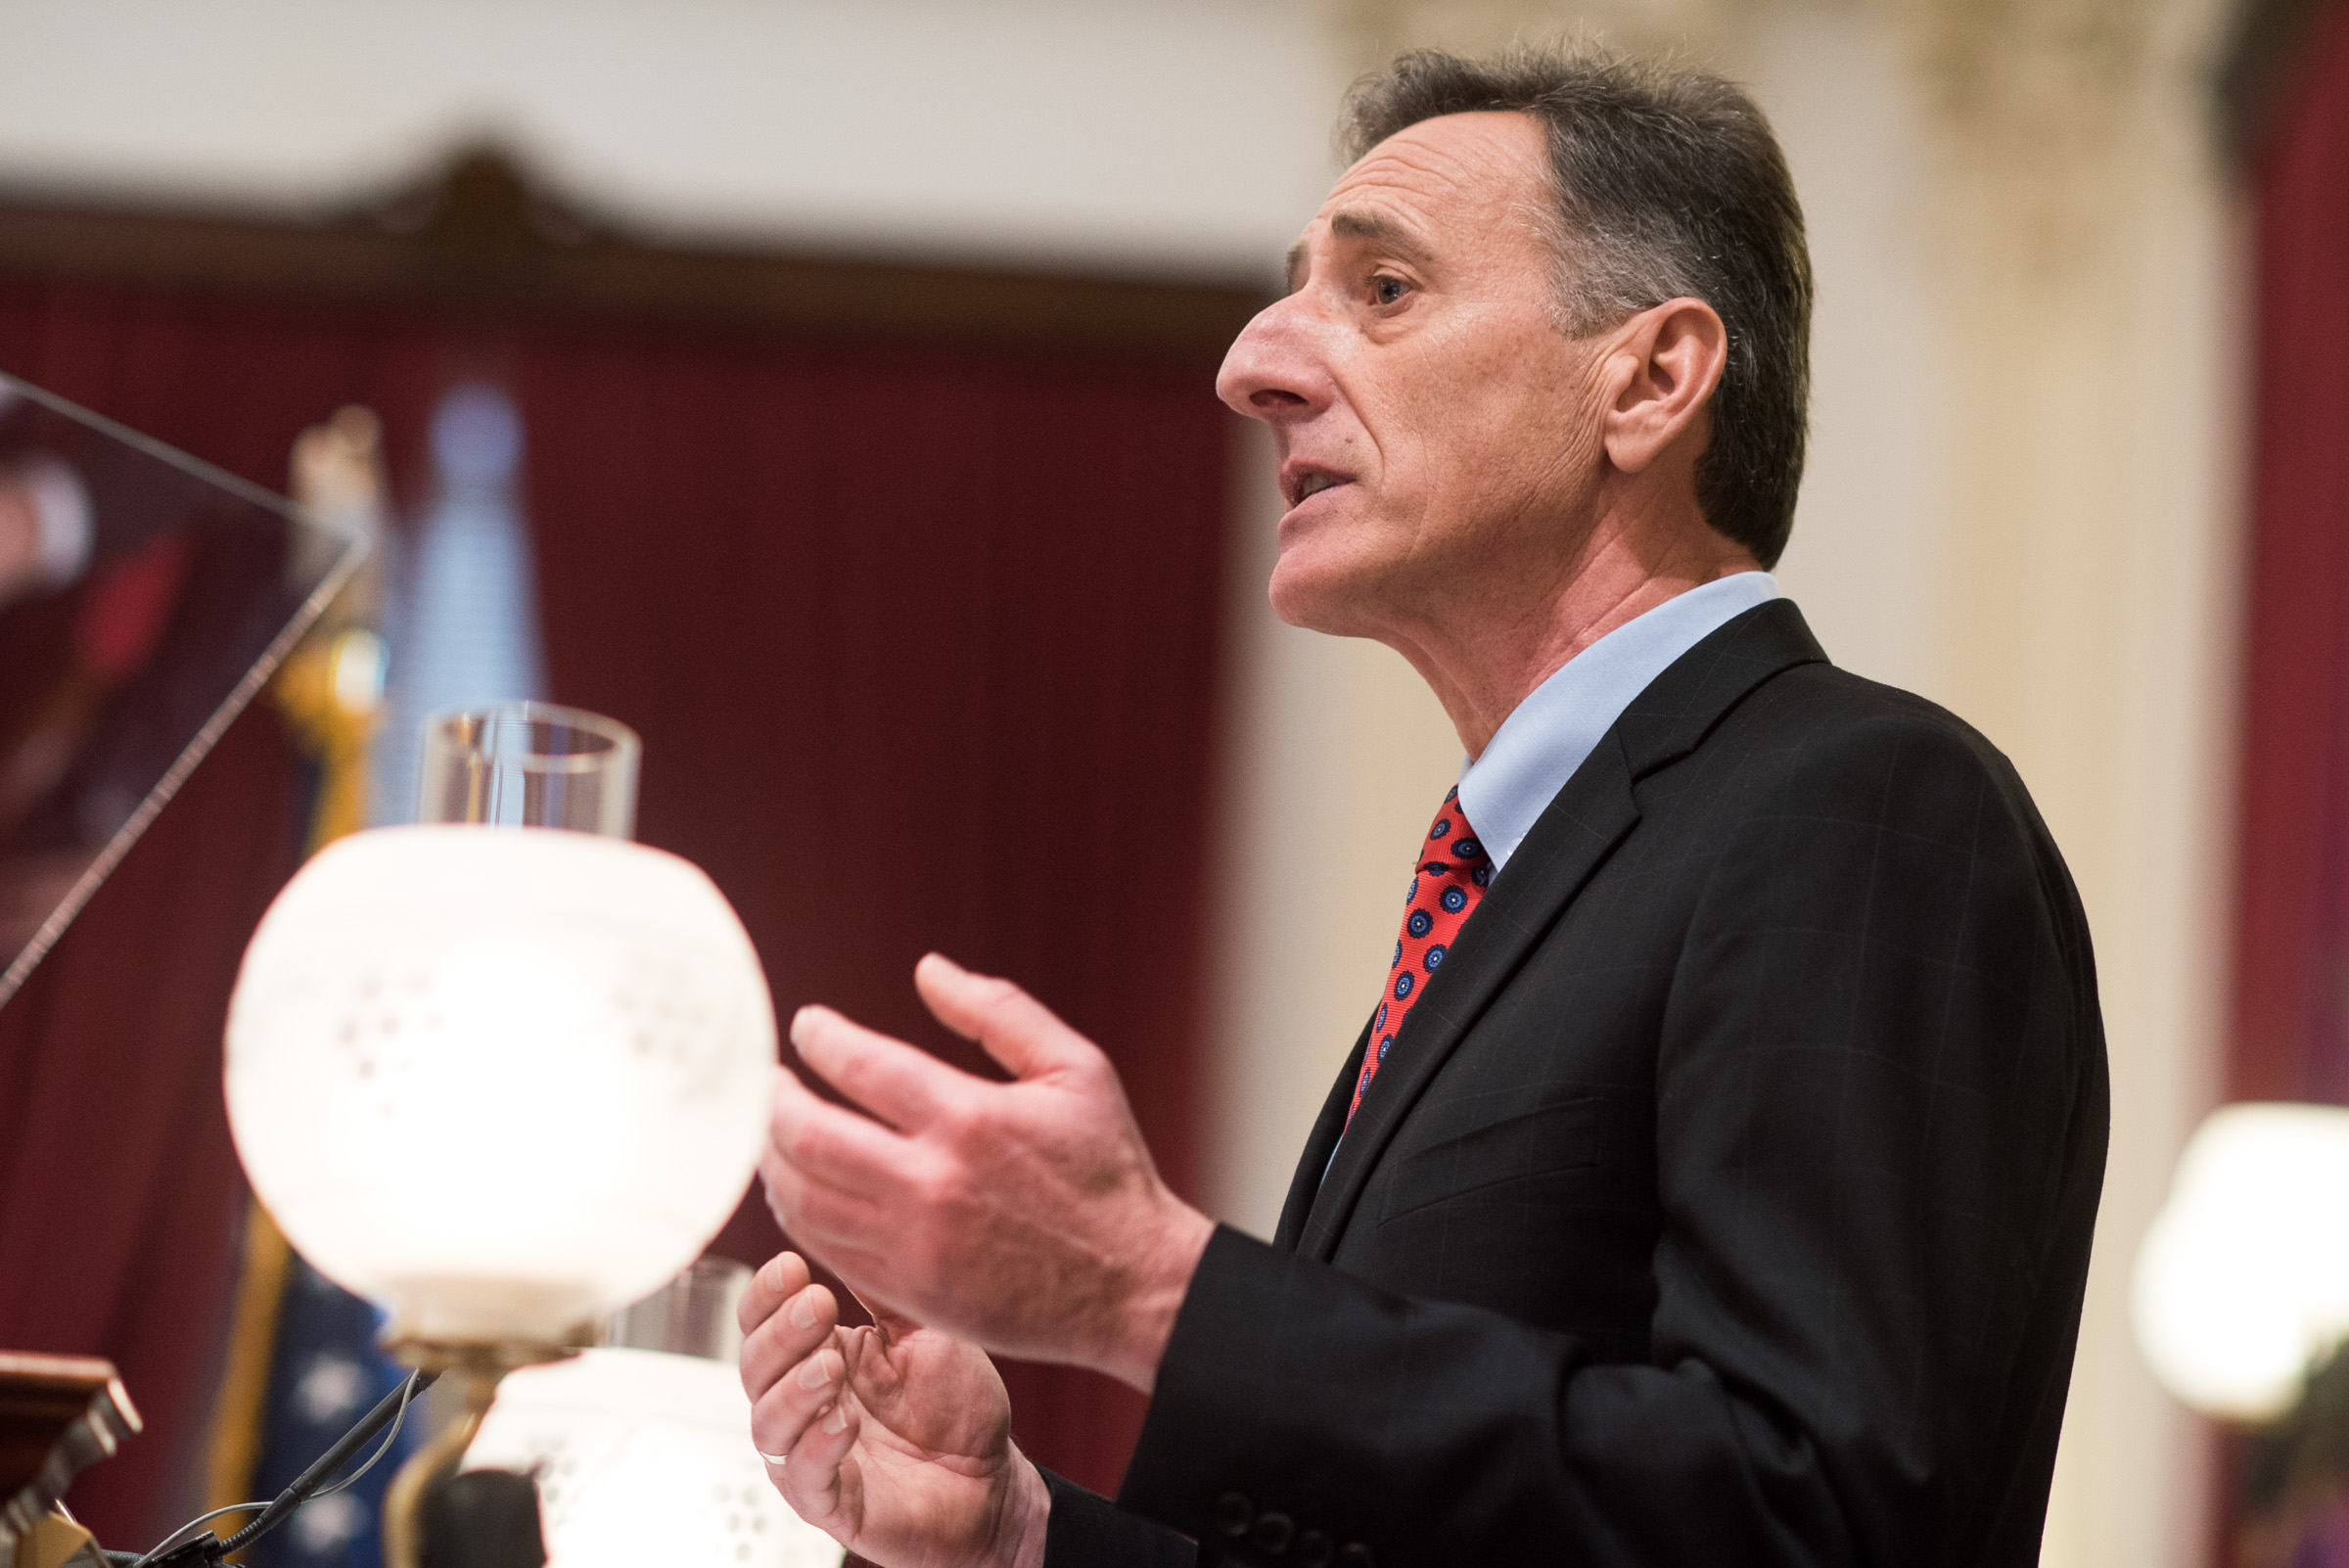 Vermont Gov. Peter Shumlin delivers his inauguration speech on Thursday, Jan. 8, 2015, at the Statehouse in Montpelier, Vt. (AP Photo/Andy Duback)